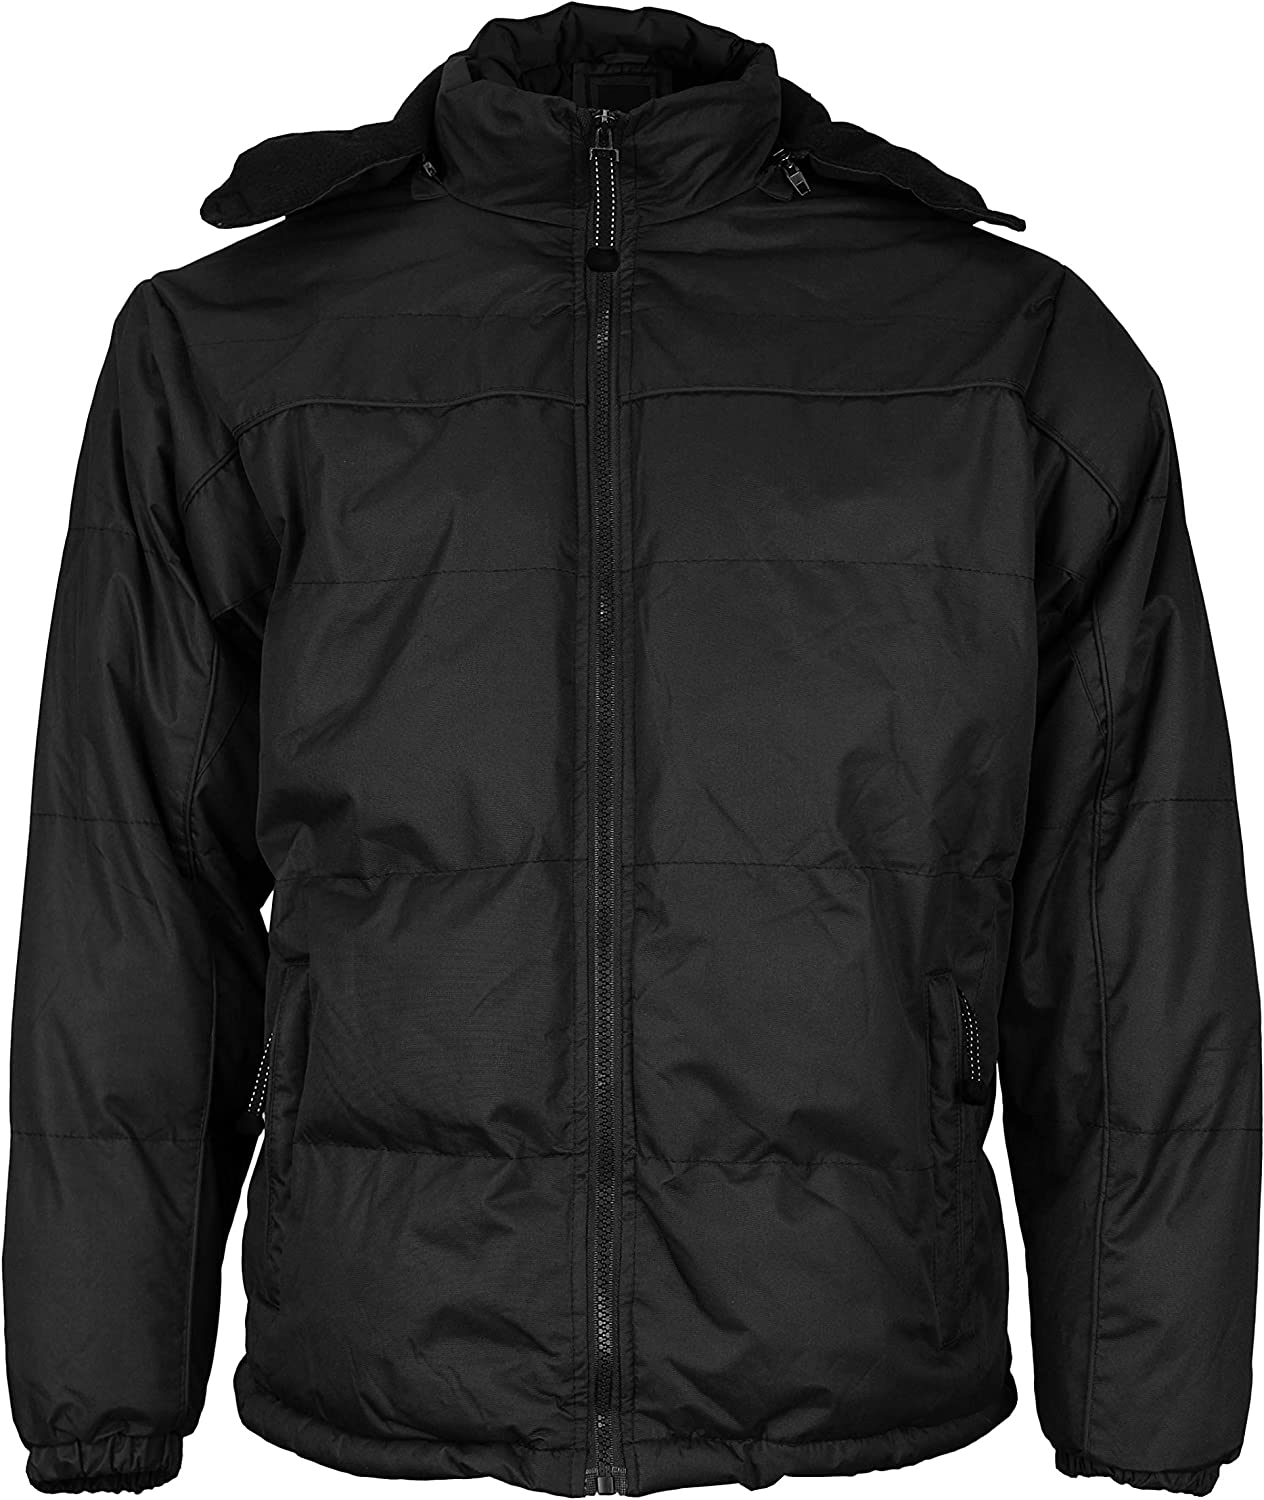 vkwear Men's Heavyweight Insulated Lined Winter Jacket with Removable Hood BIGBEAR